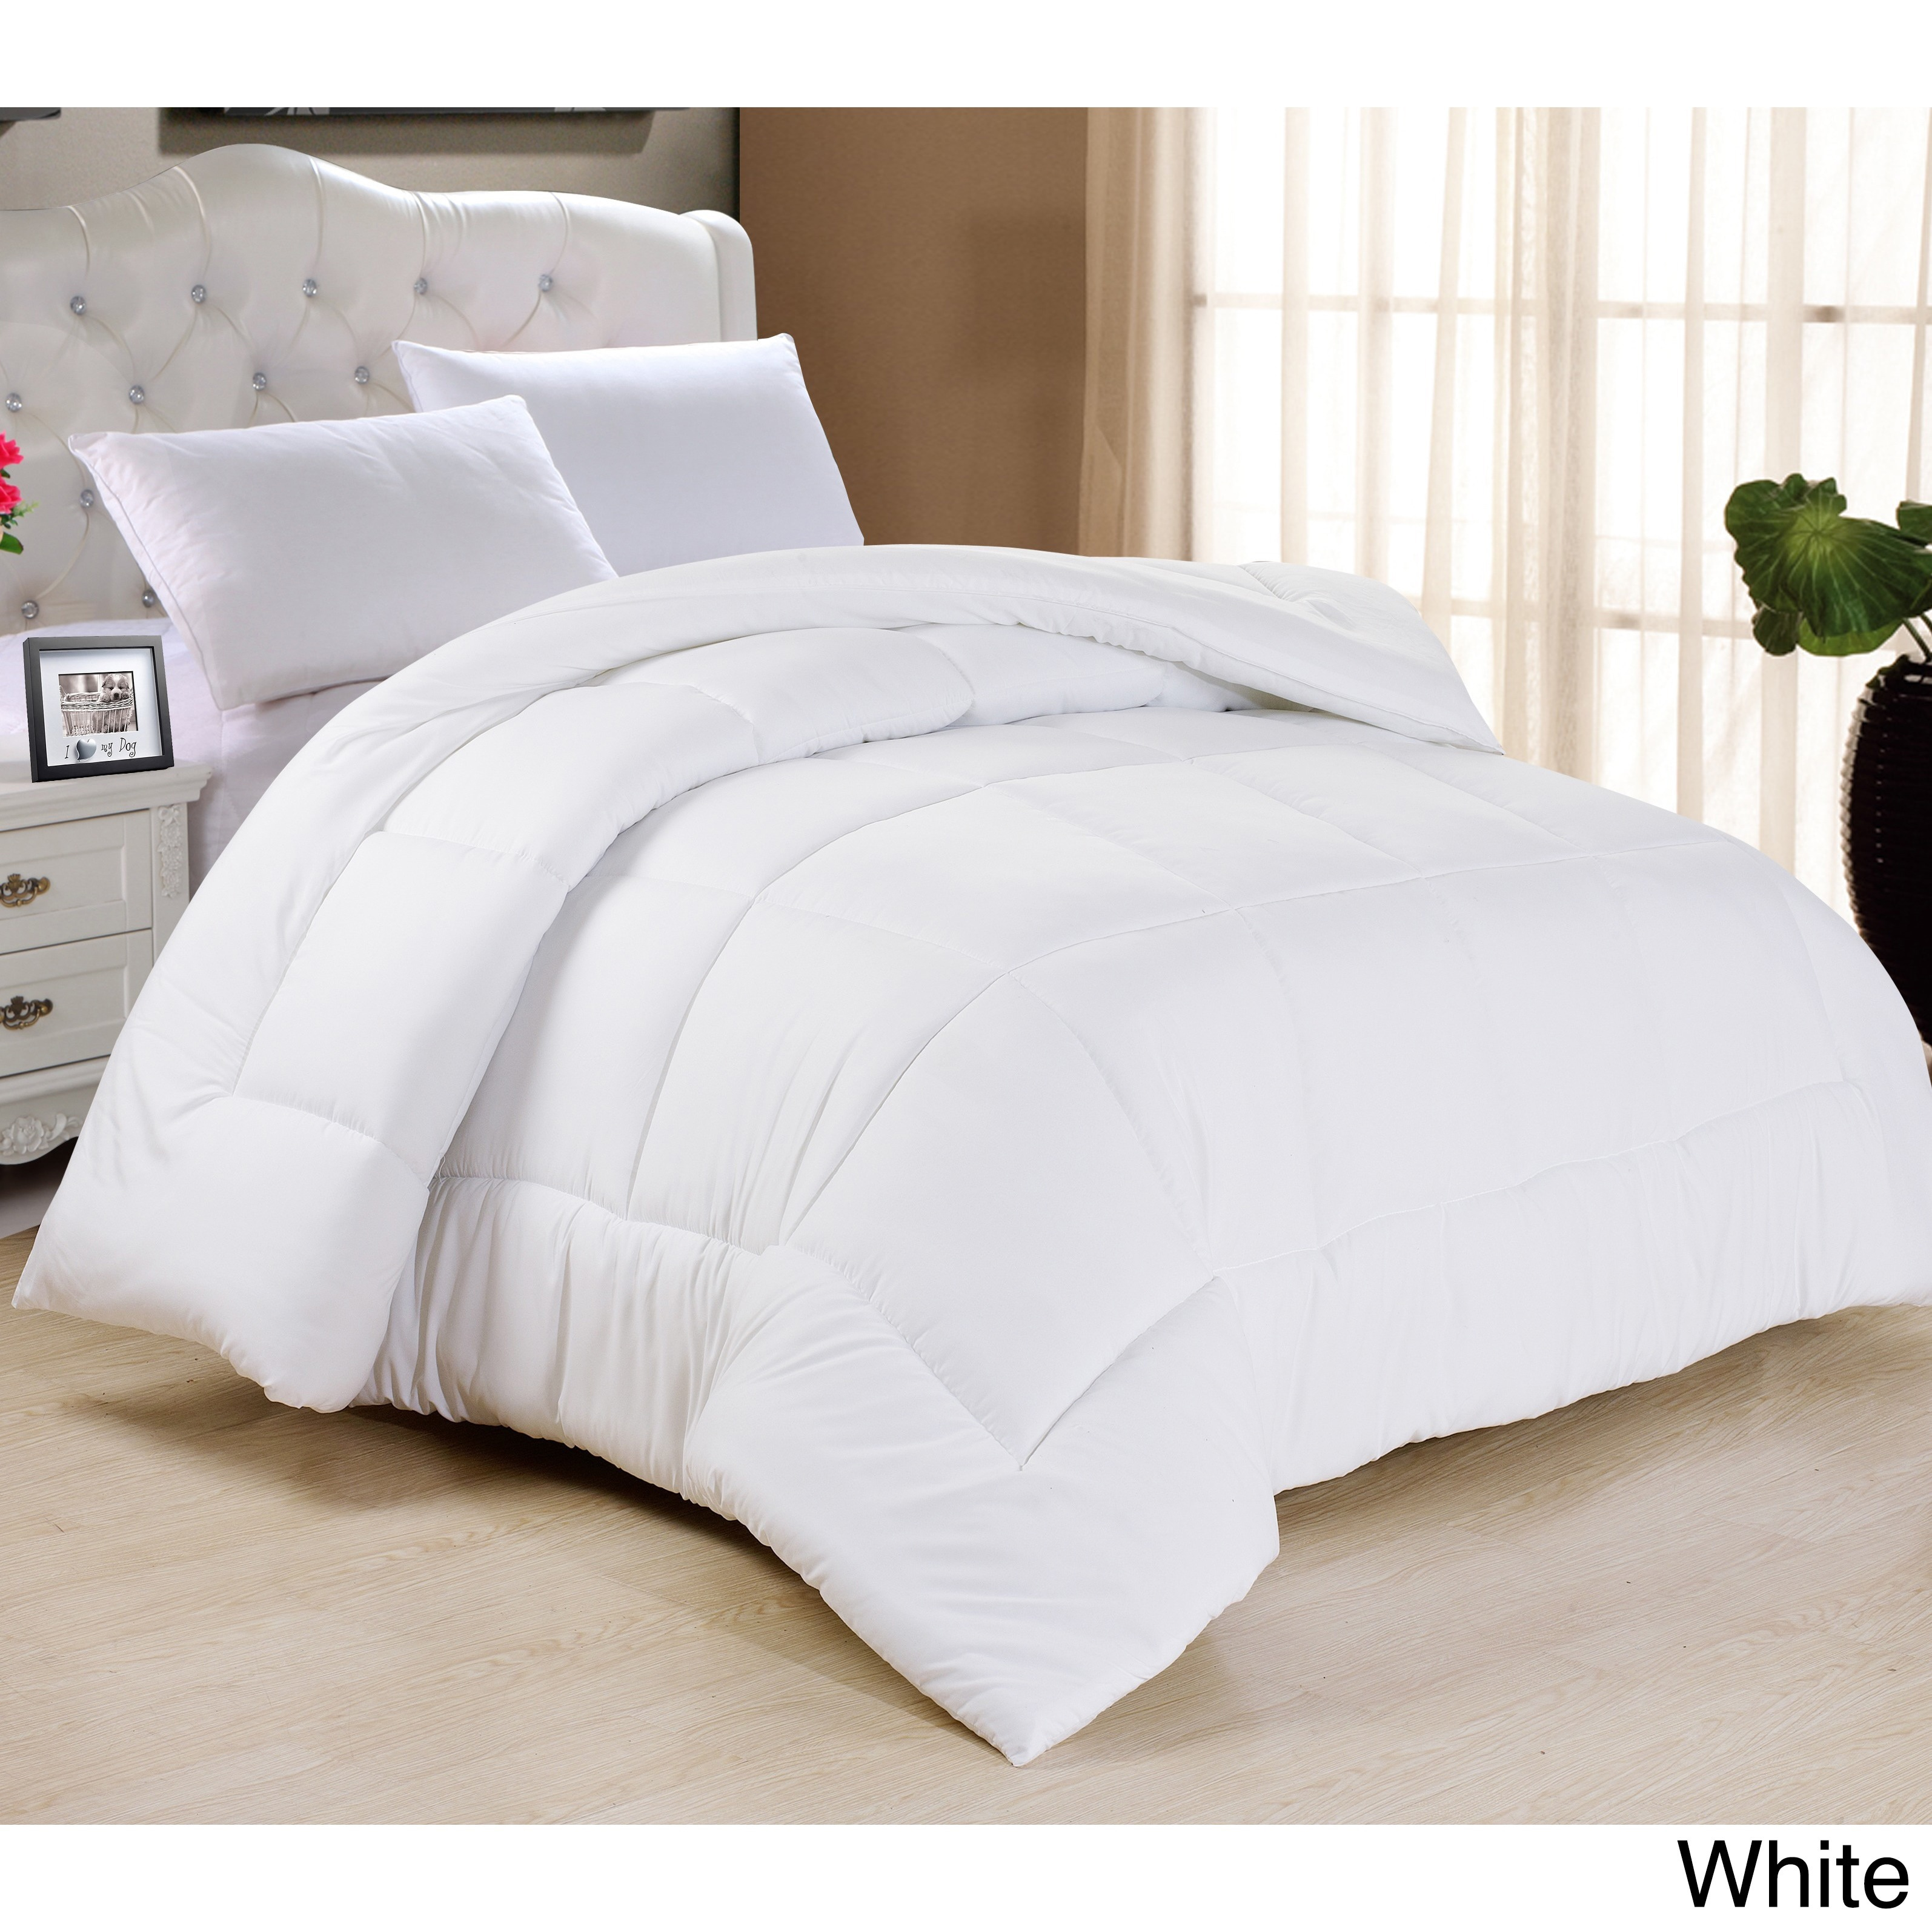 levels bfdf comforter style alternative ip multiple com reviews walmart hotel warmth down